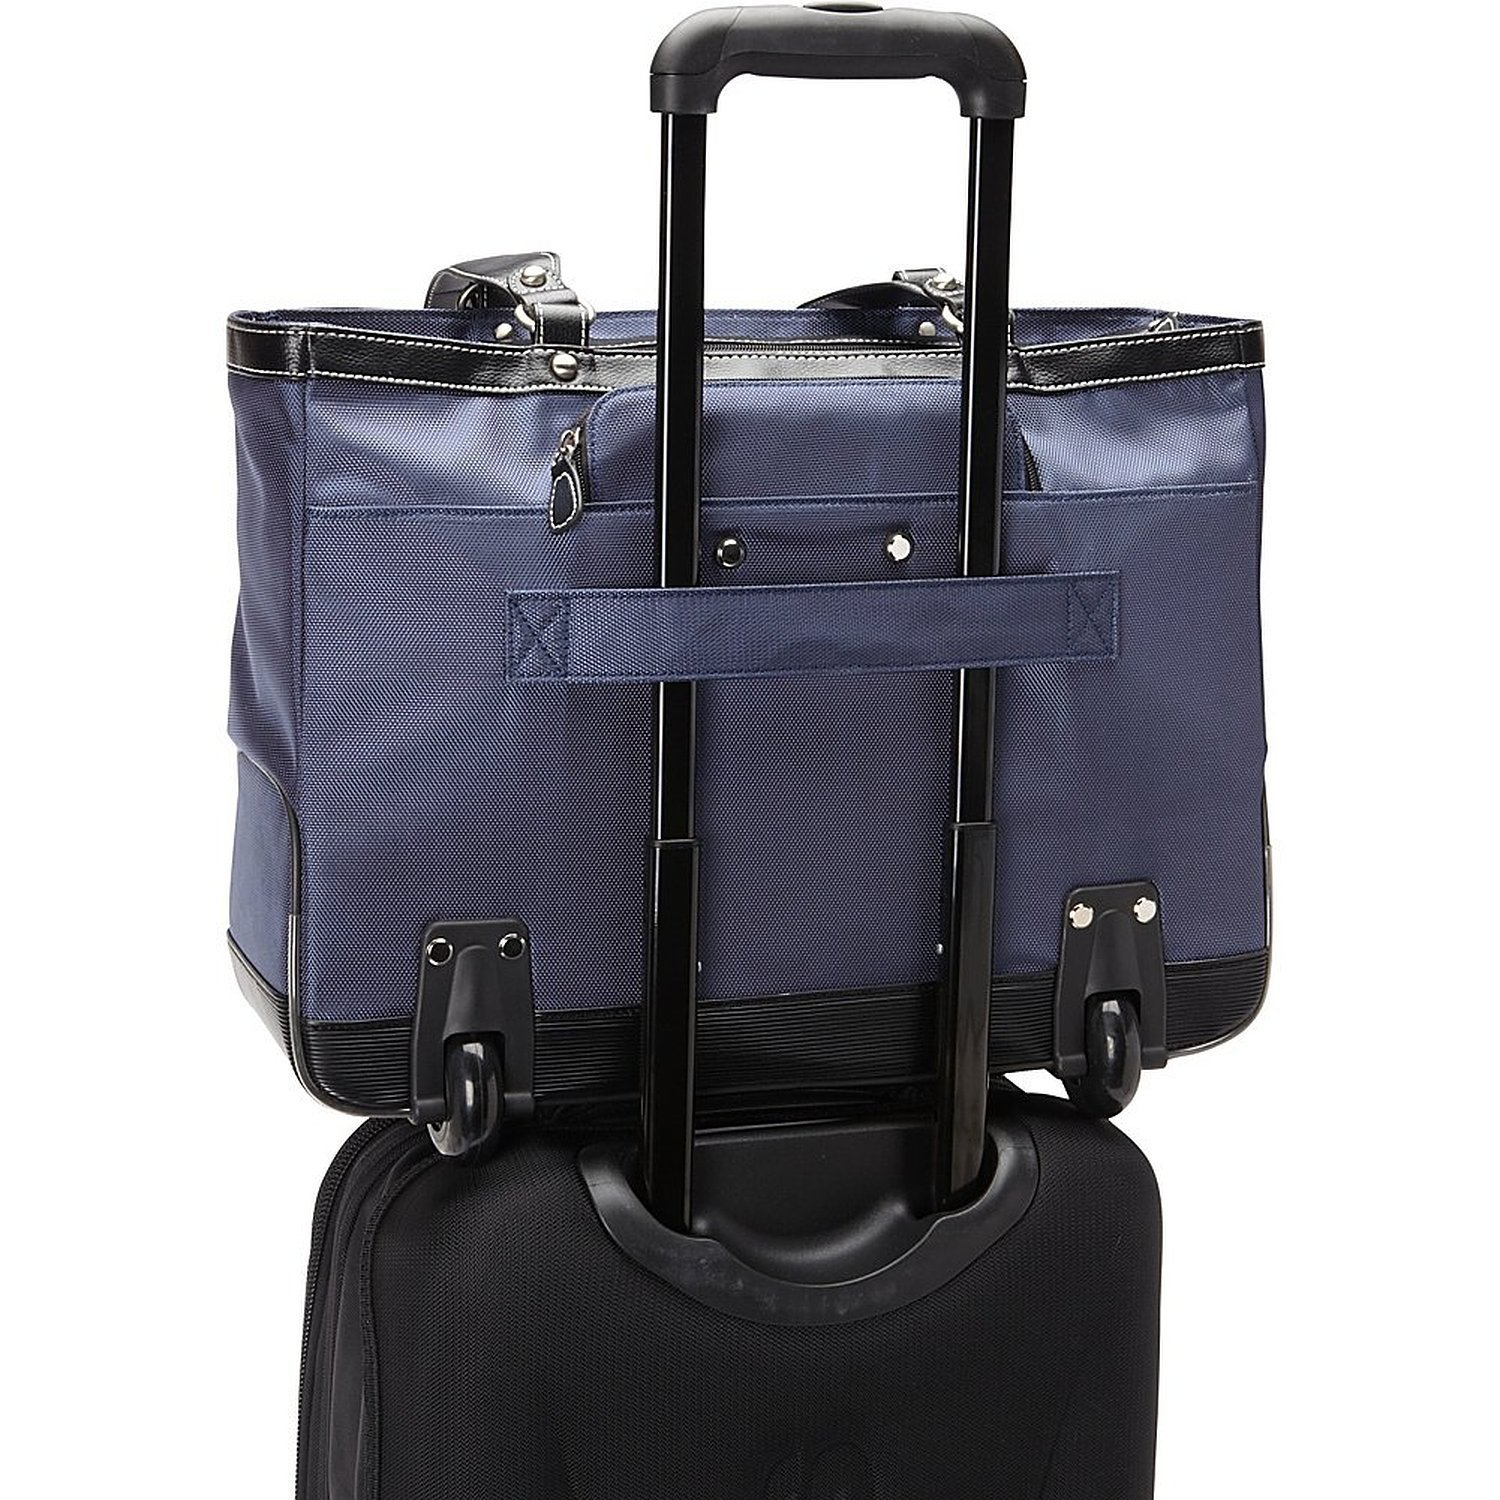 Clark and Mayfield Marquam 18.4 Rolling Laptop Tote Computer Handbag in Black